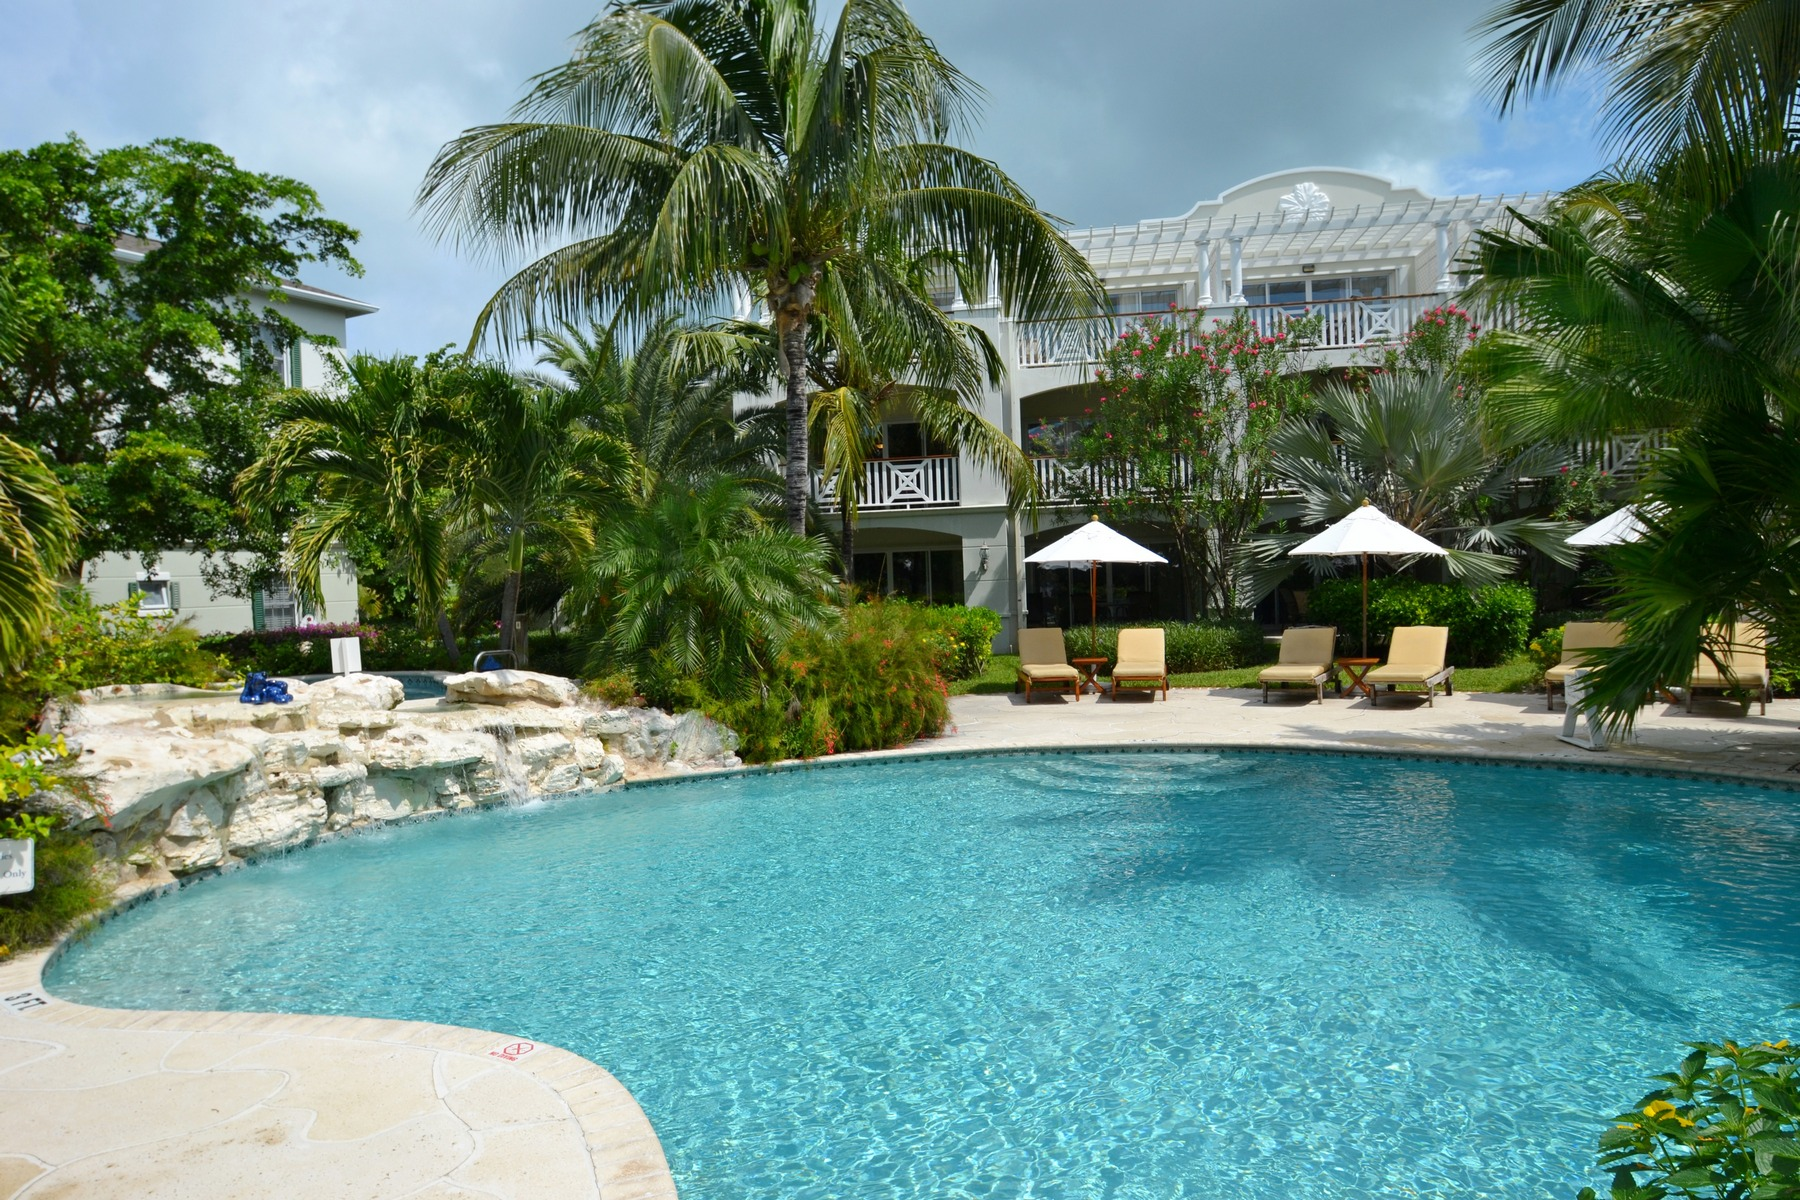 Condominium for Sale at Royal West Indies - Suite 833 Beachfront Grace Bay, Providenciales TCI Turks And Caicos Islands